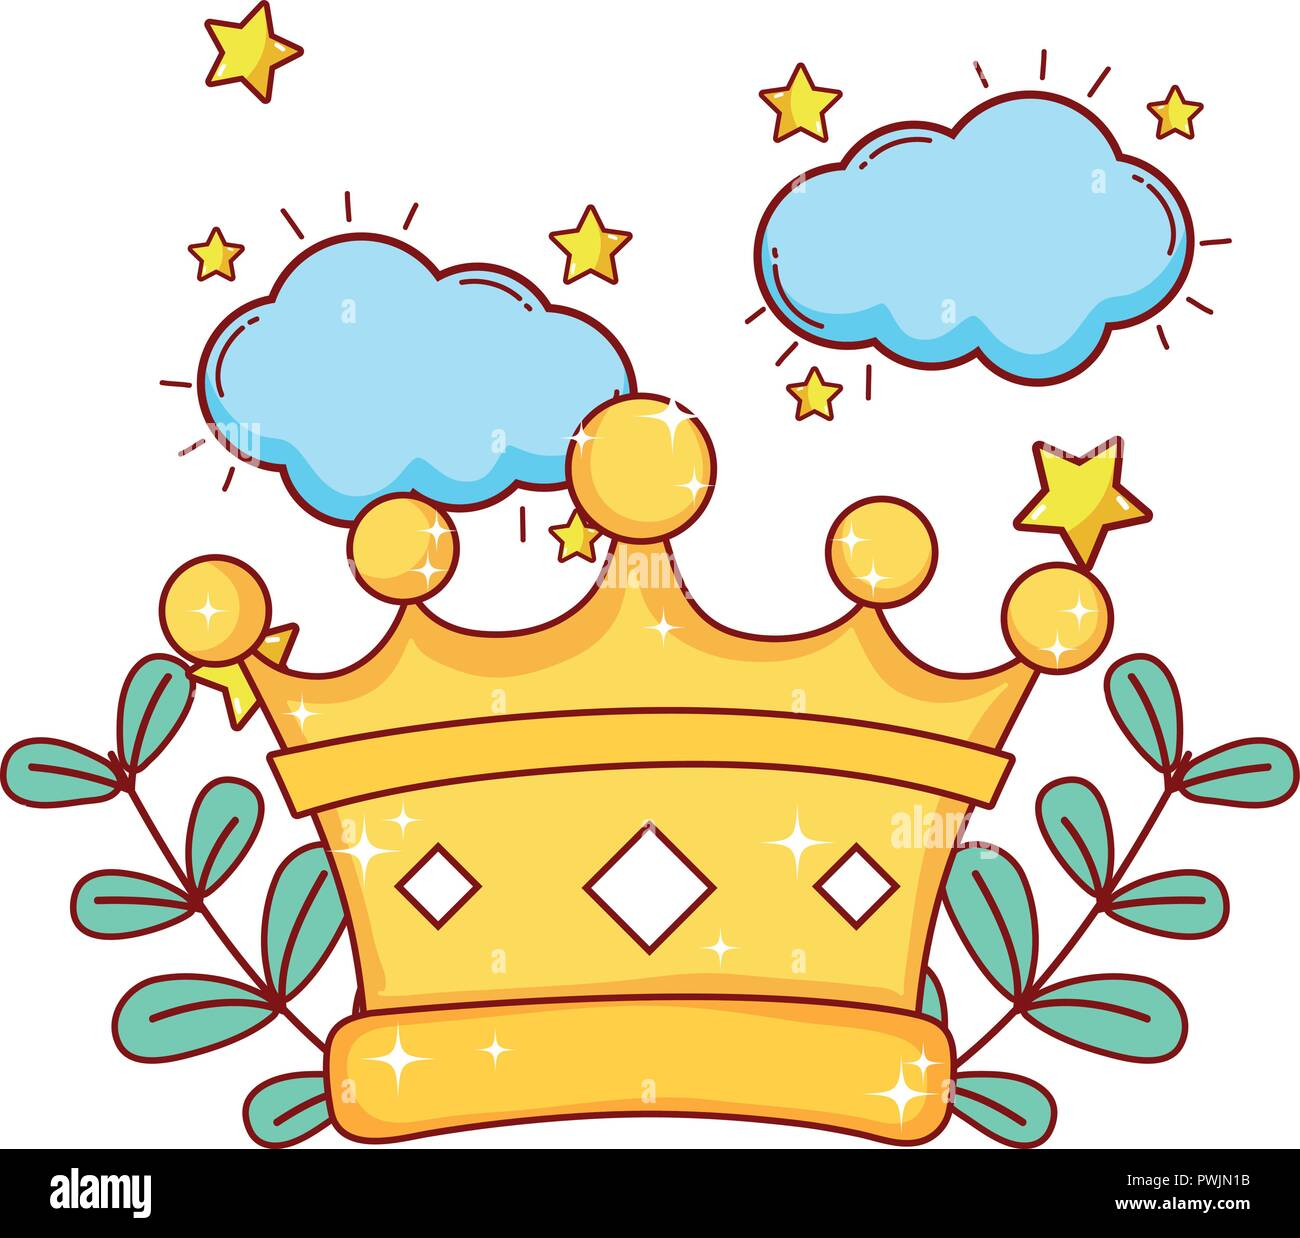 King Crown Cartoon Stock Vector Image Art Alamy Largest collection of crown vector free vector art, vector images, vector graphic resources, clip art, illustrations, wallpaper background designs for royal crown vector free download. alamy